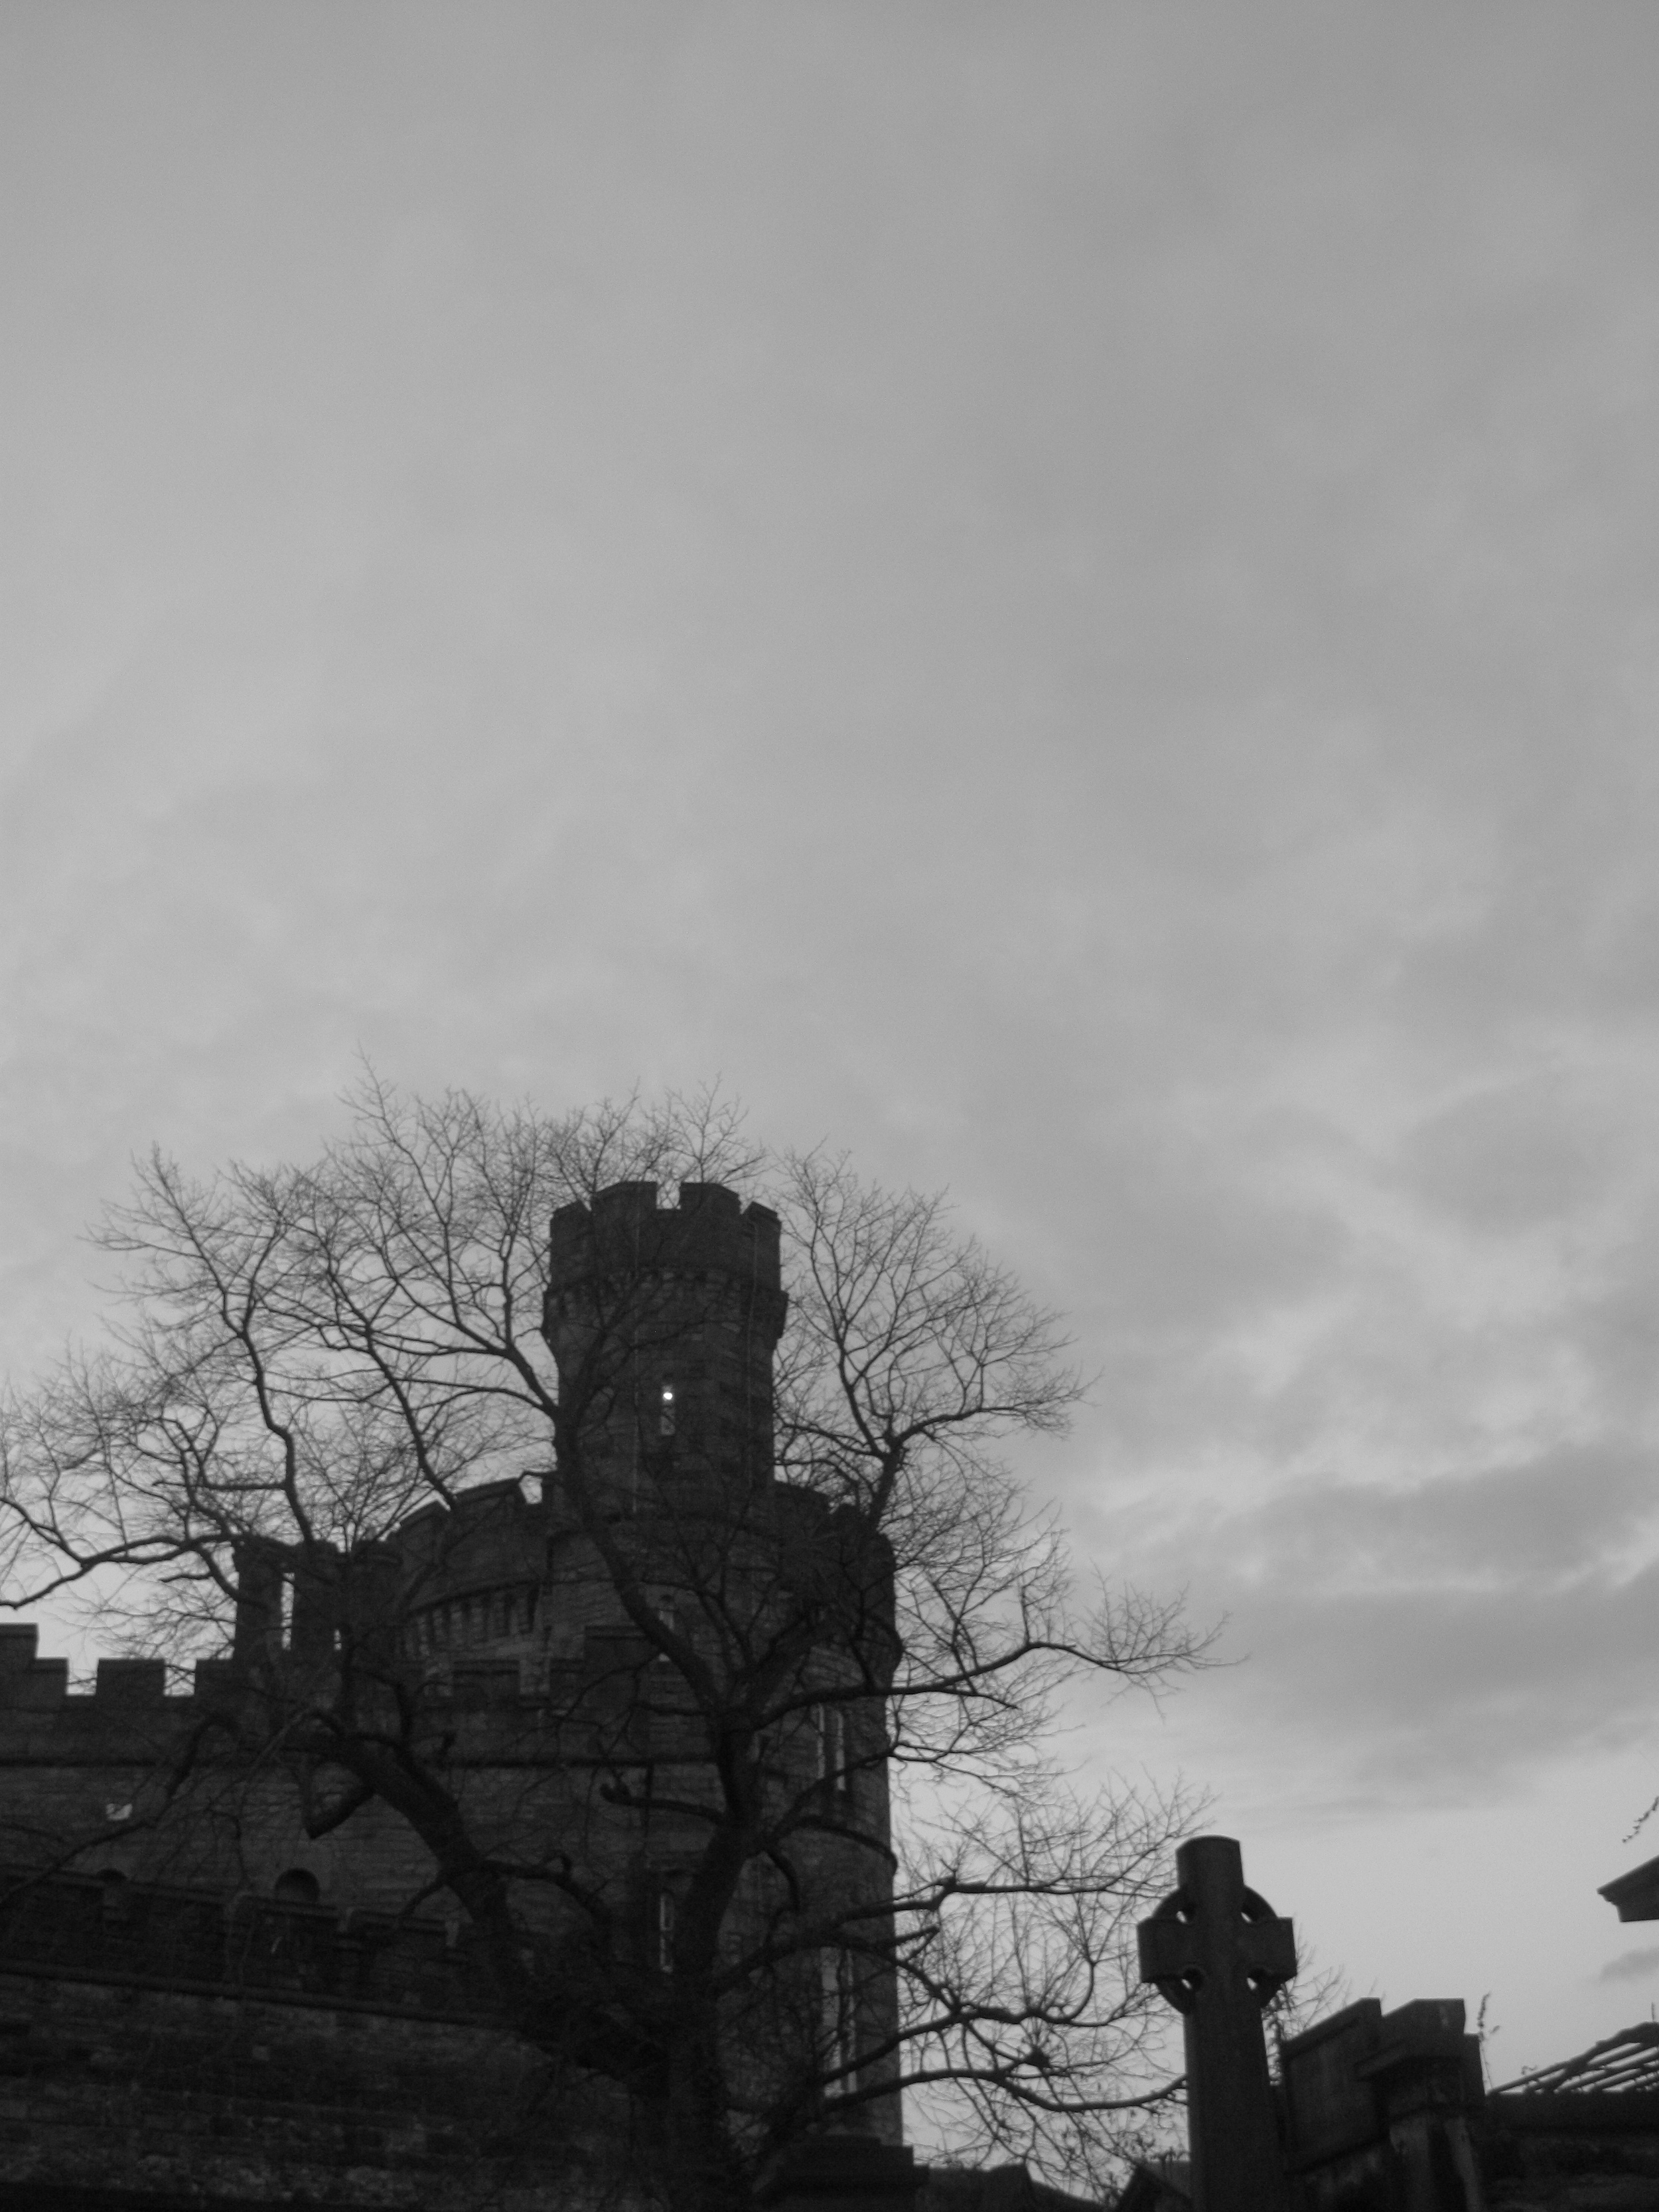 Circular turrets on the tombs in Old Calton cemetery